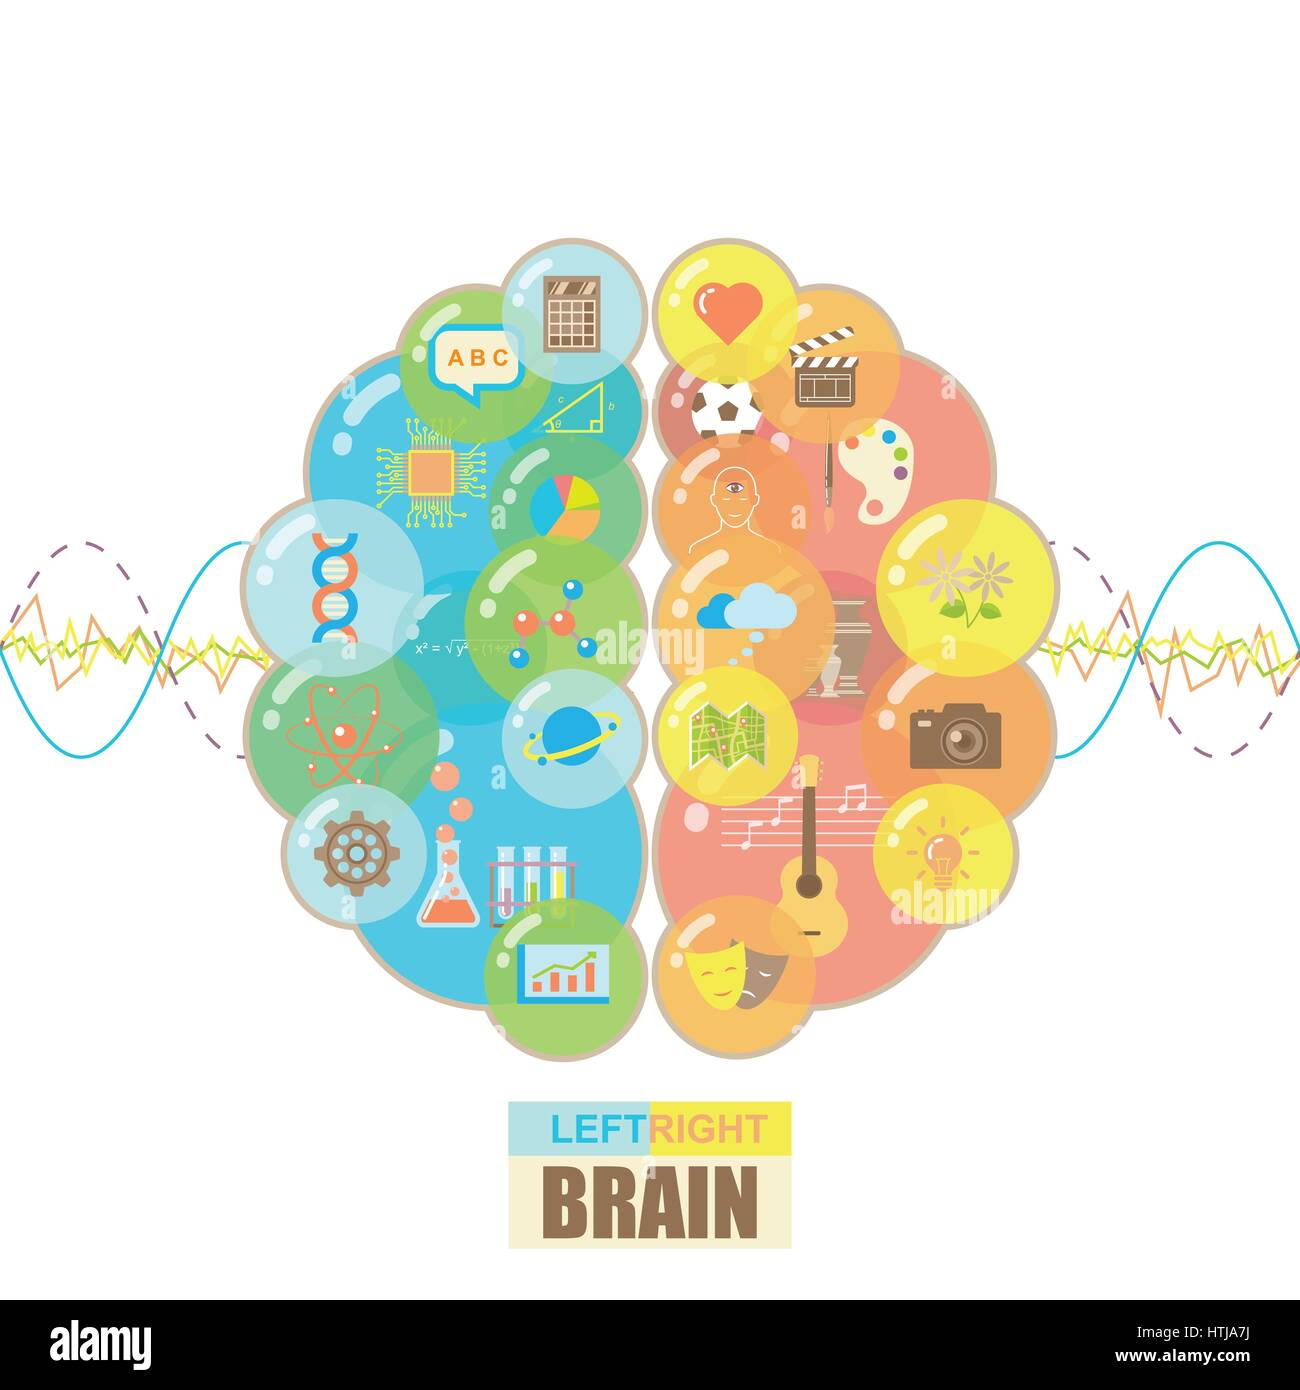 Functions of left and right brain hemispheres in groups of colorful bubbles with brain waves concept on white background - Stock Image